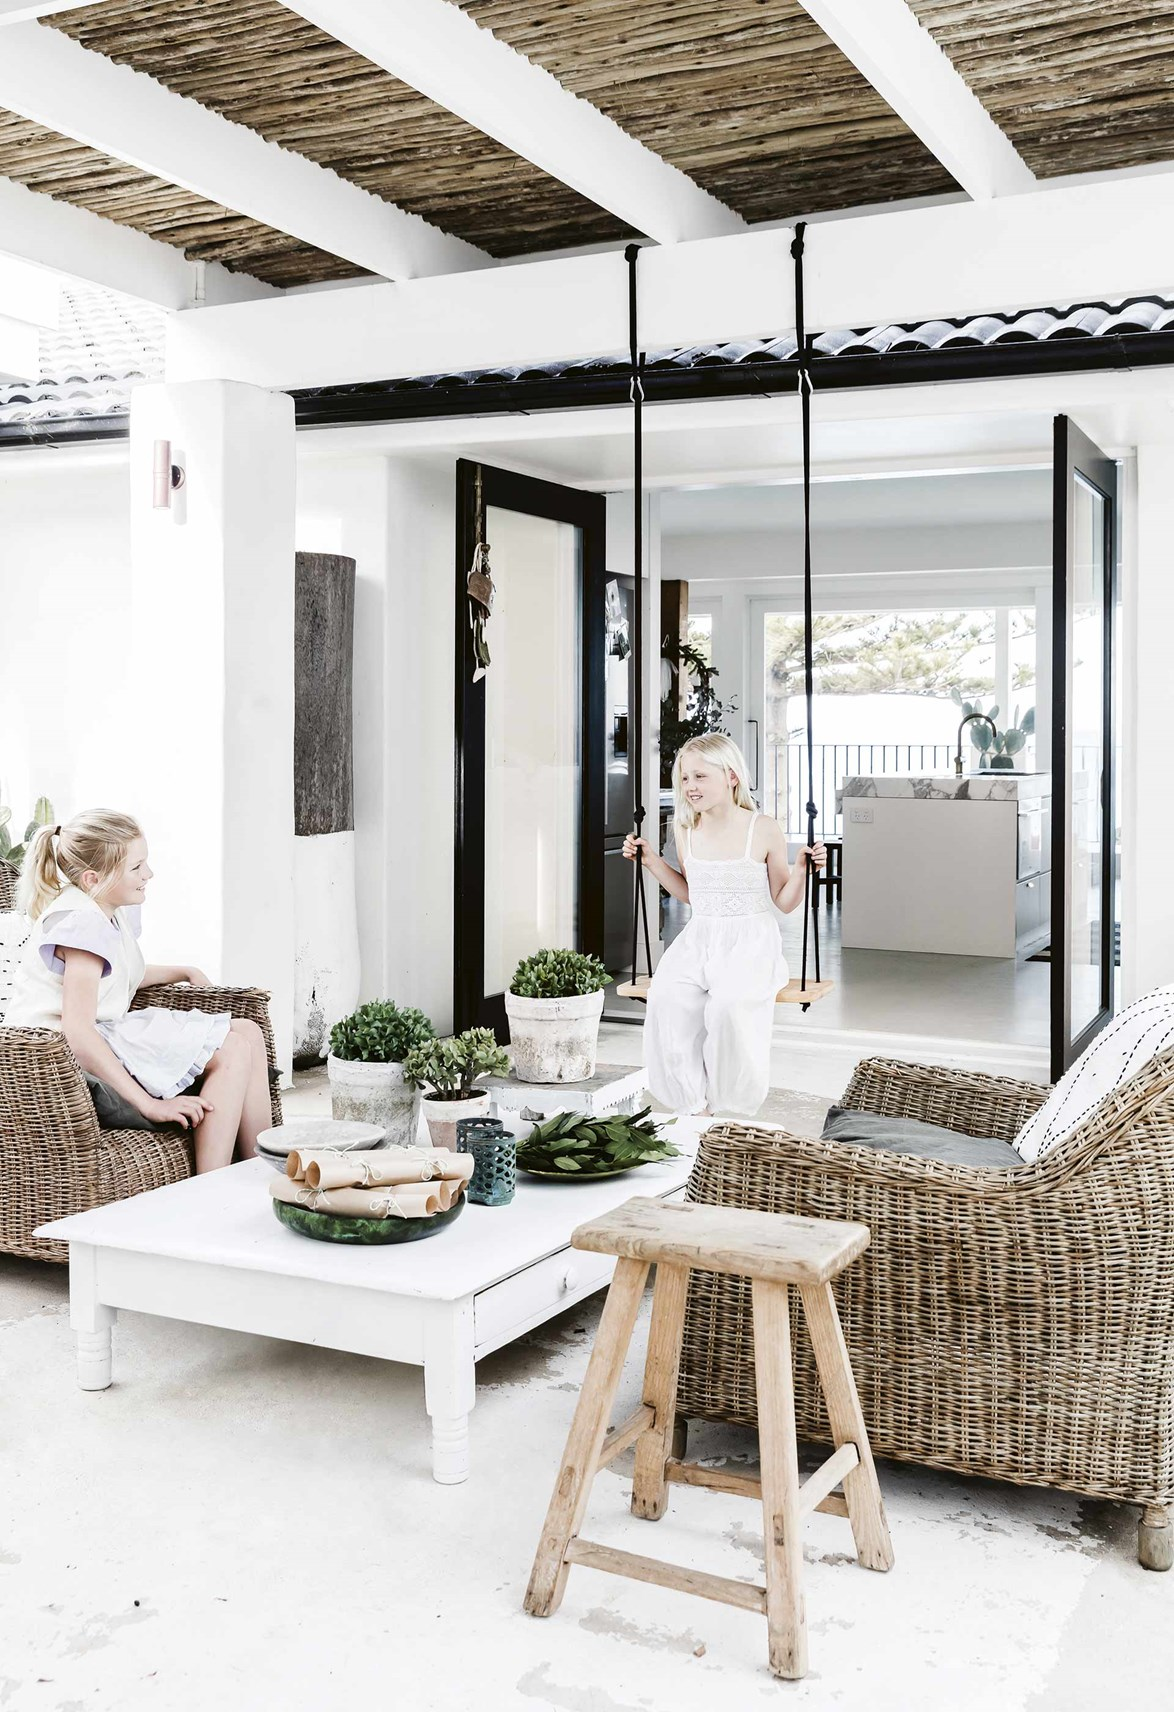 "A seamless connection to the outdoors and a comfortable area to relax, entertain and dine alfresco is essential when creating a Mediterranean style home. Overlooking Bungan Beach on Sydney's Northern Beaches, this breezy, [all-white home](https://www.homestolove.com.au/mediterranean-style-all-white-home-16945|target=""_blank"") has all the makings of a luxe holiday retreat in Santorini, with its resort style pool, outdoor shower and plenty of places to lounge around."